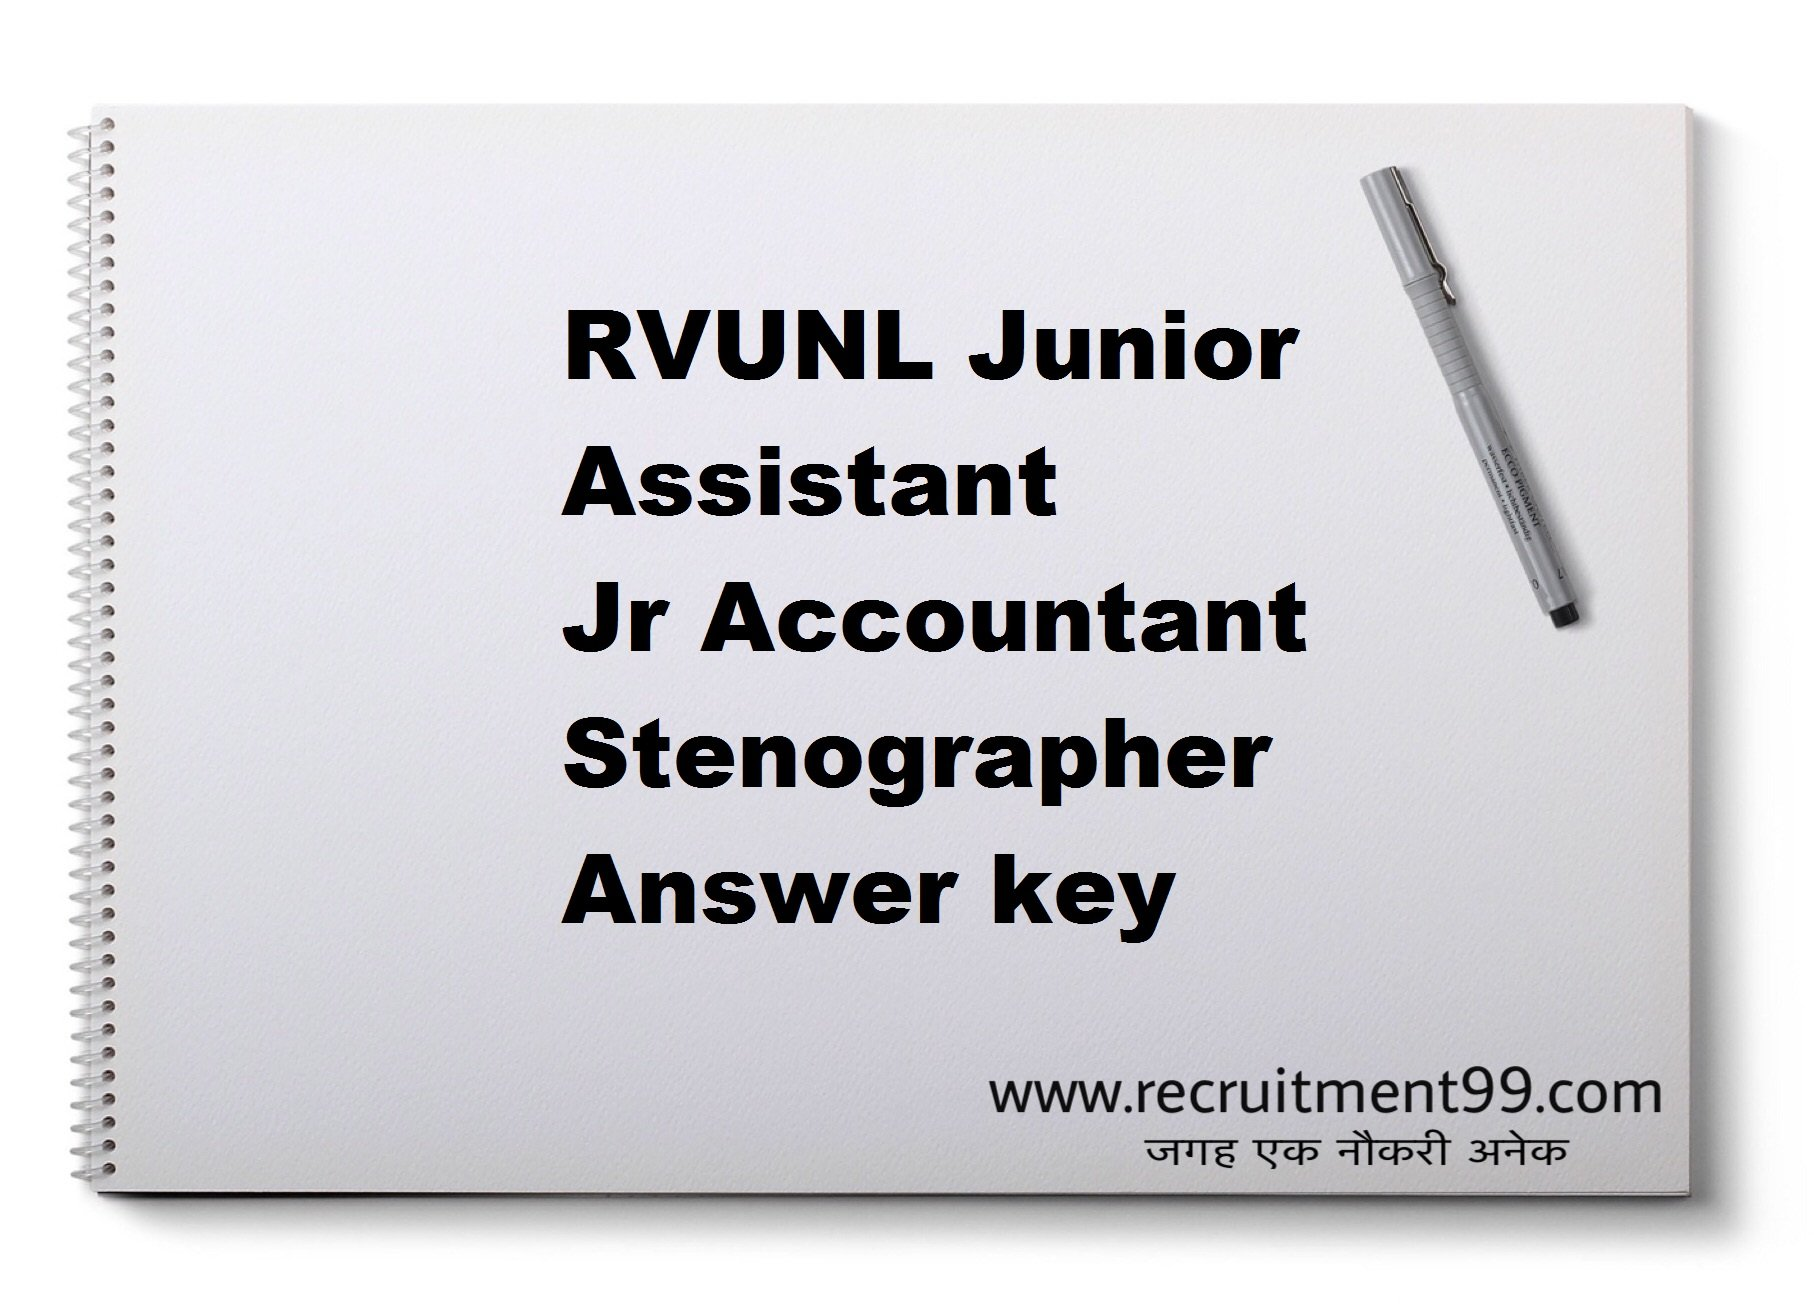 RVUNL Junior Assistant Jr Accountant Stenographer Answer key  2018